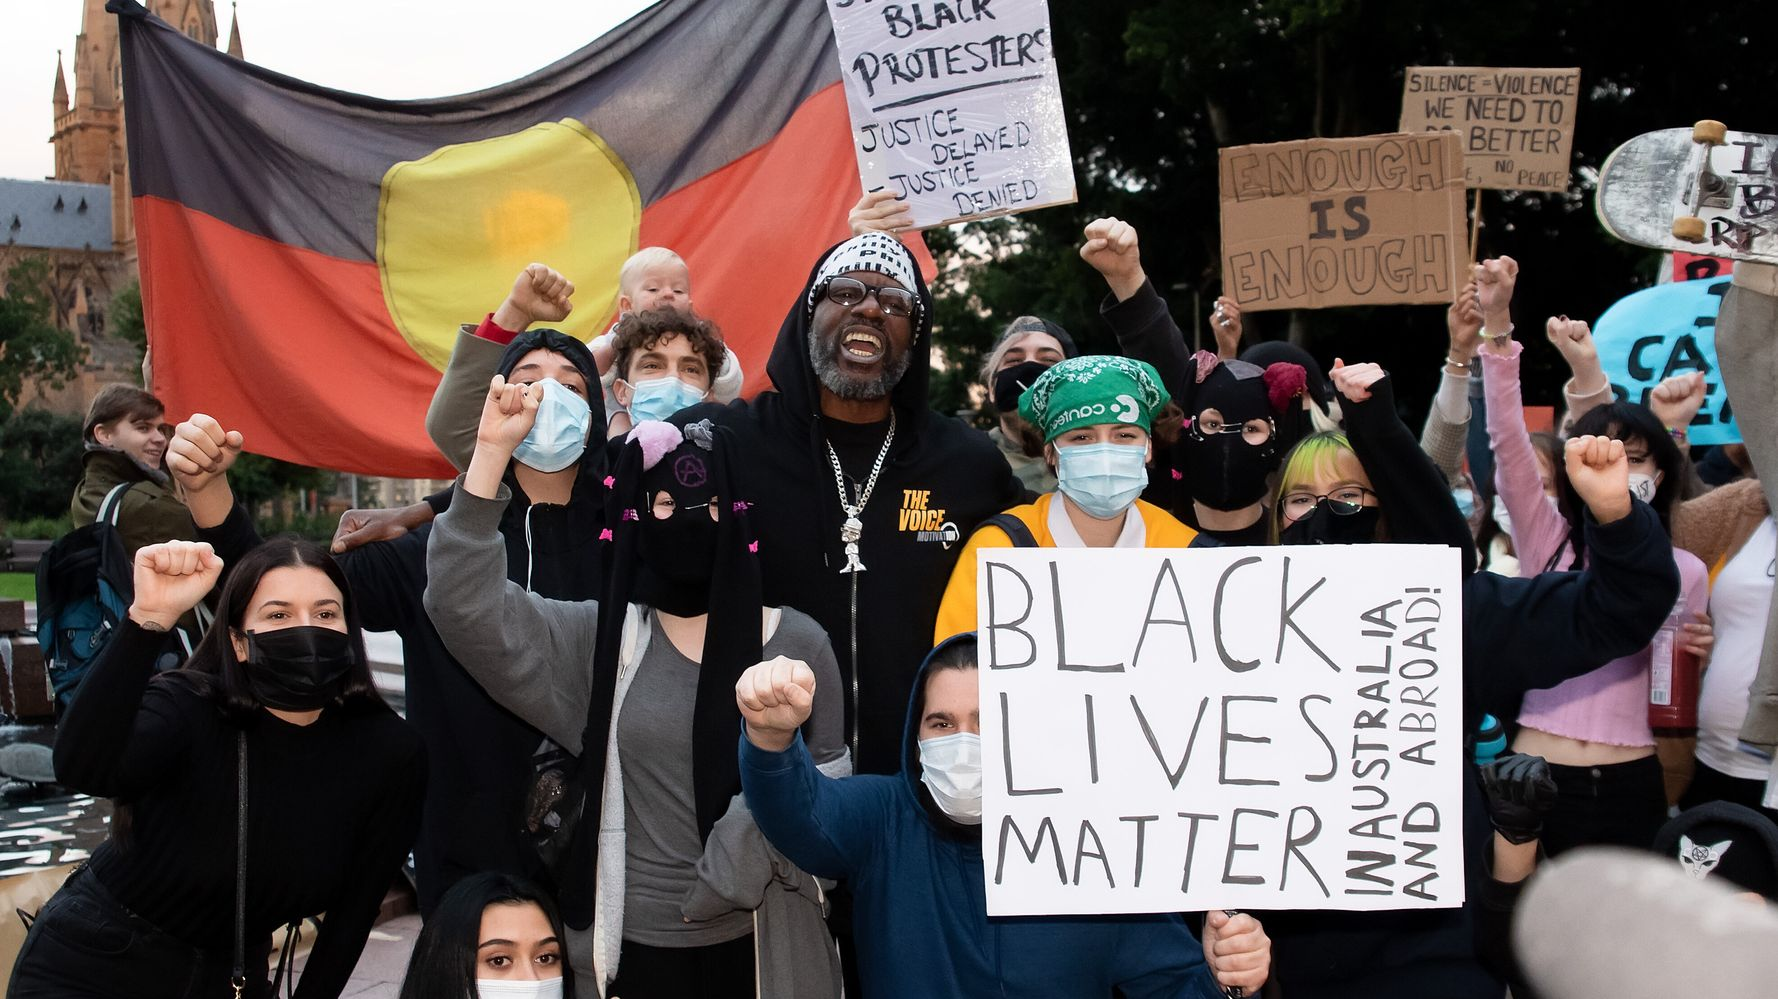 Where Are The Black Lives Matter Rallies In Australia And How Do I Protest Safely?